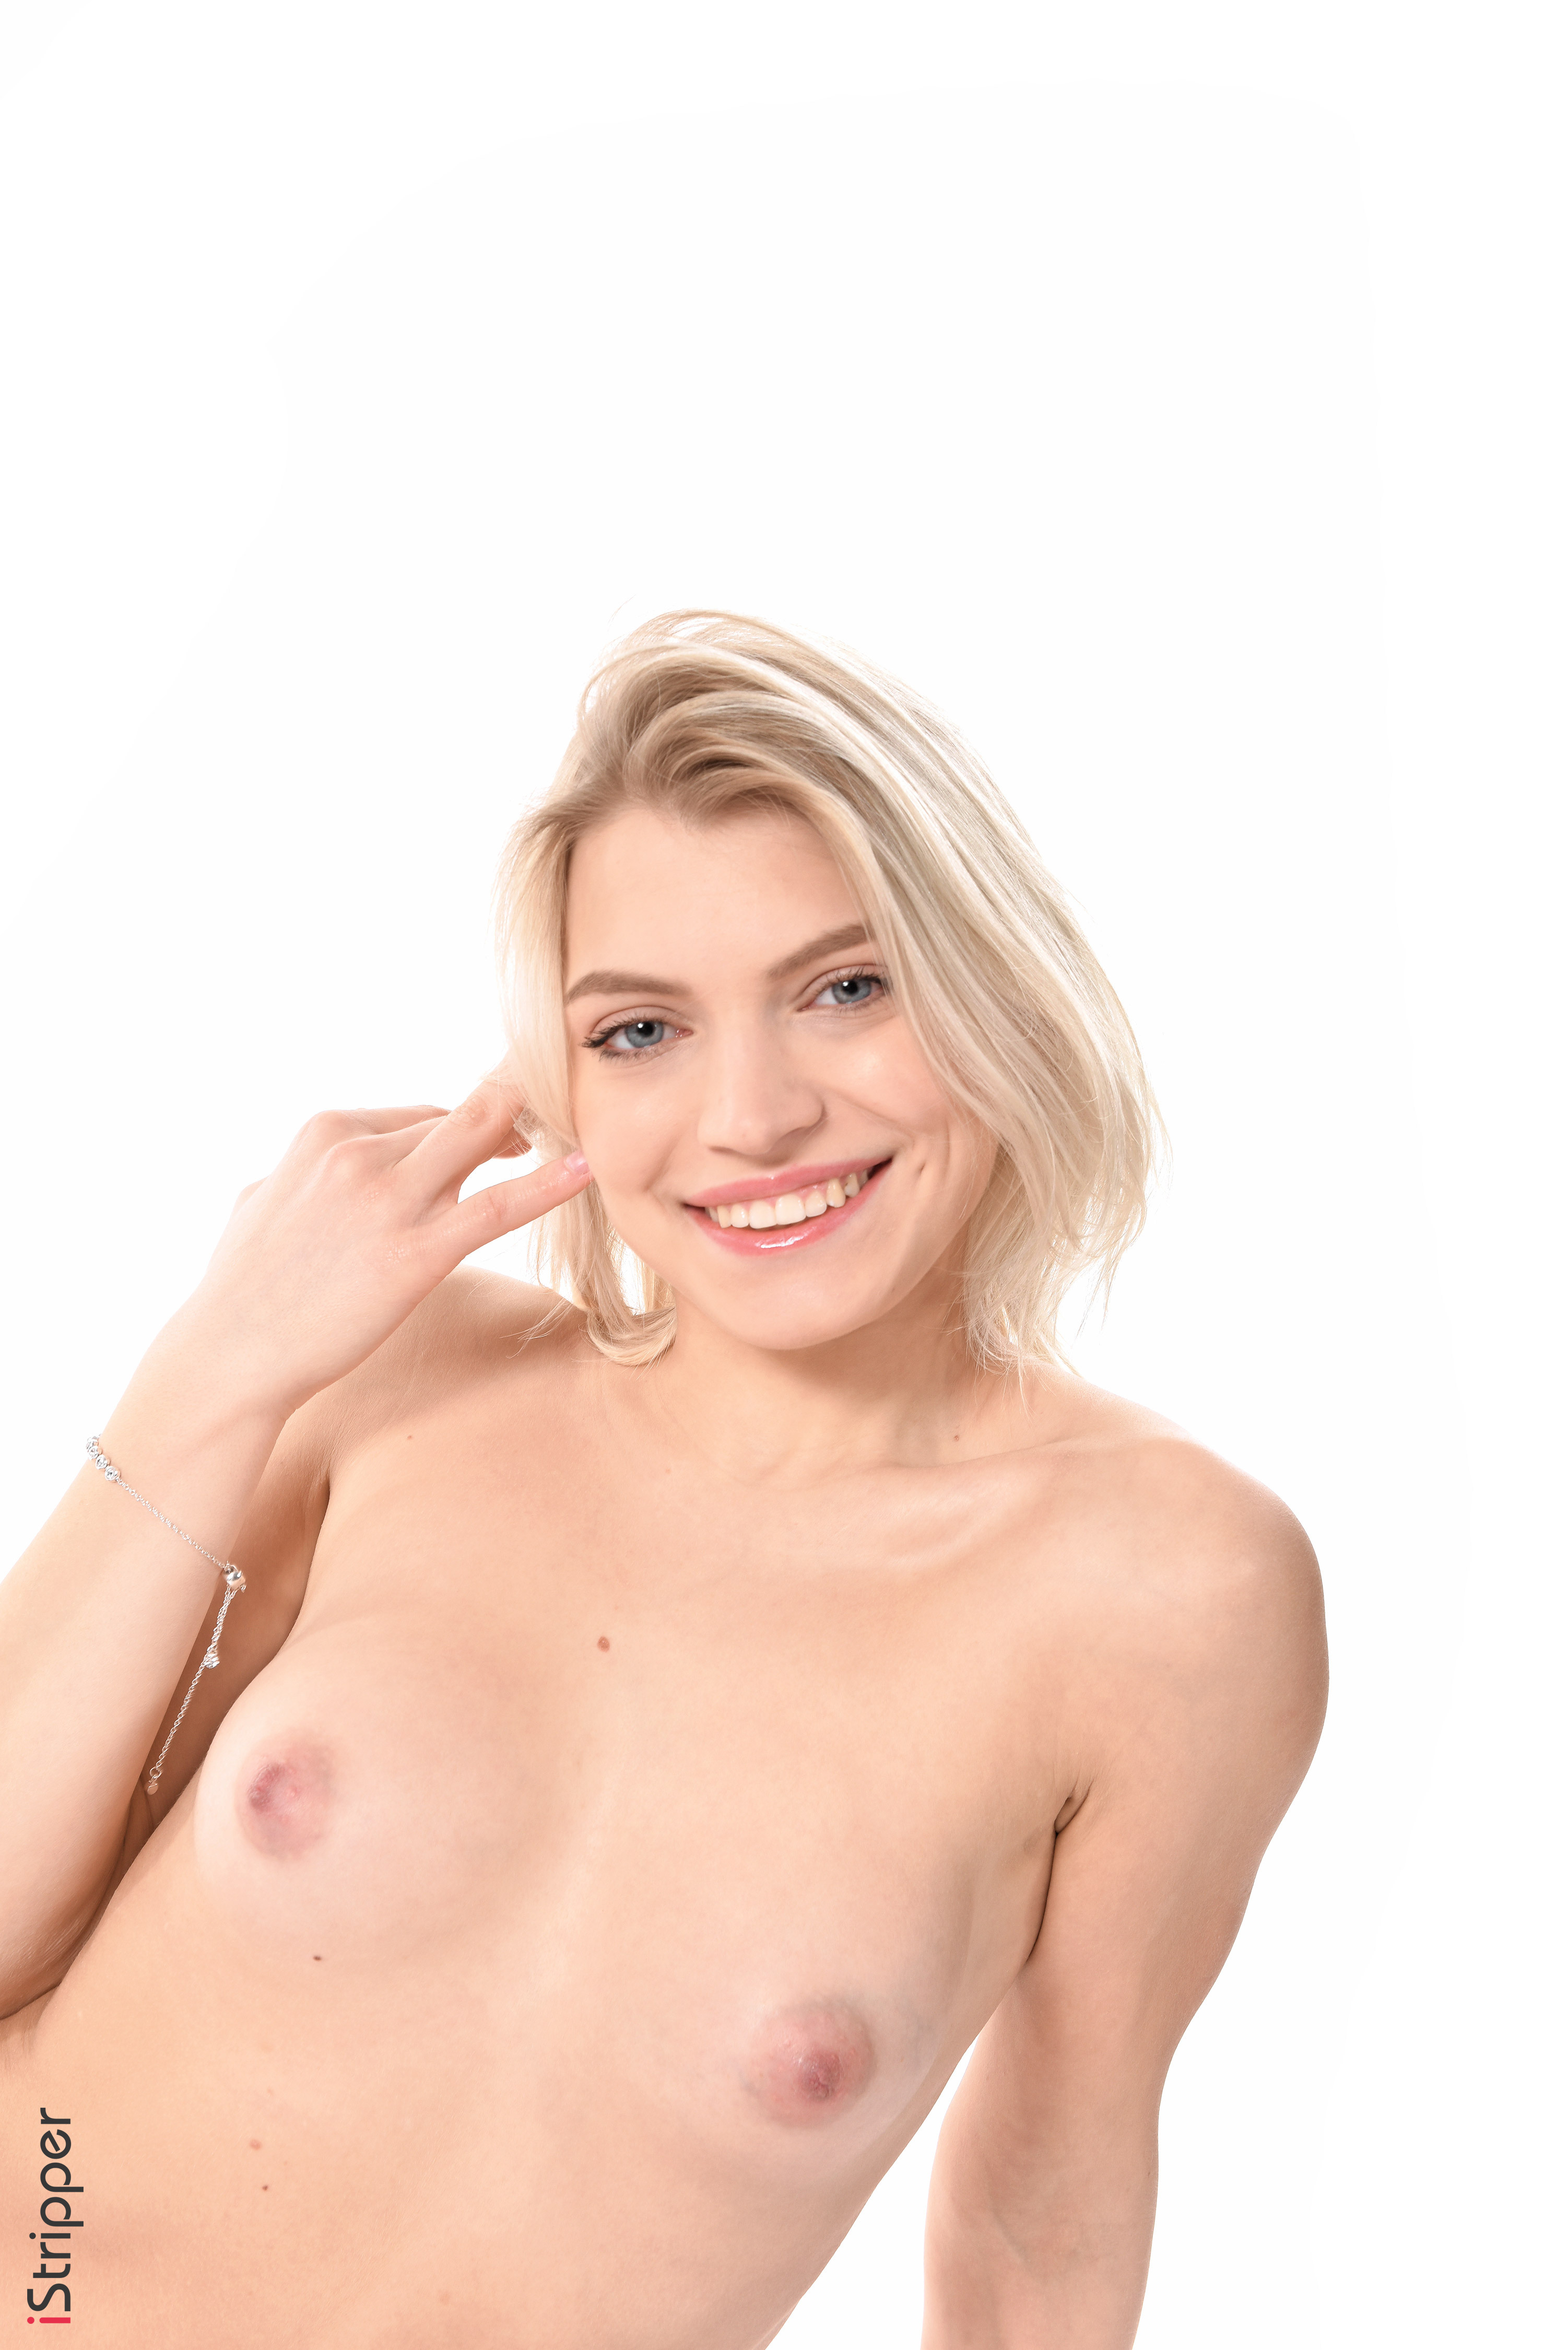 hd nude babes wallpaper